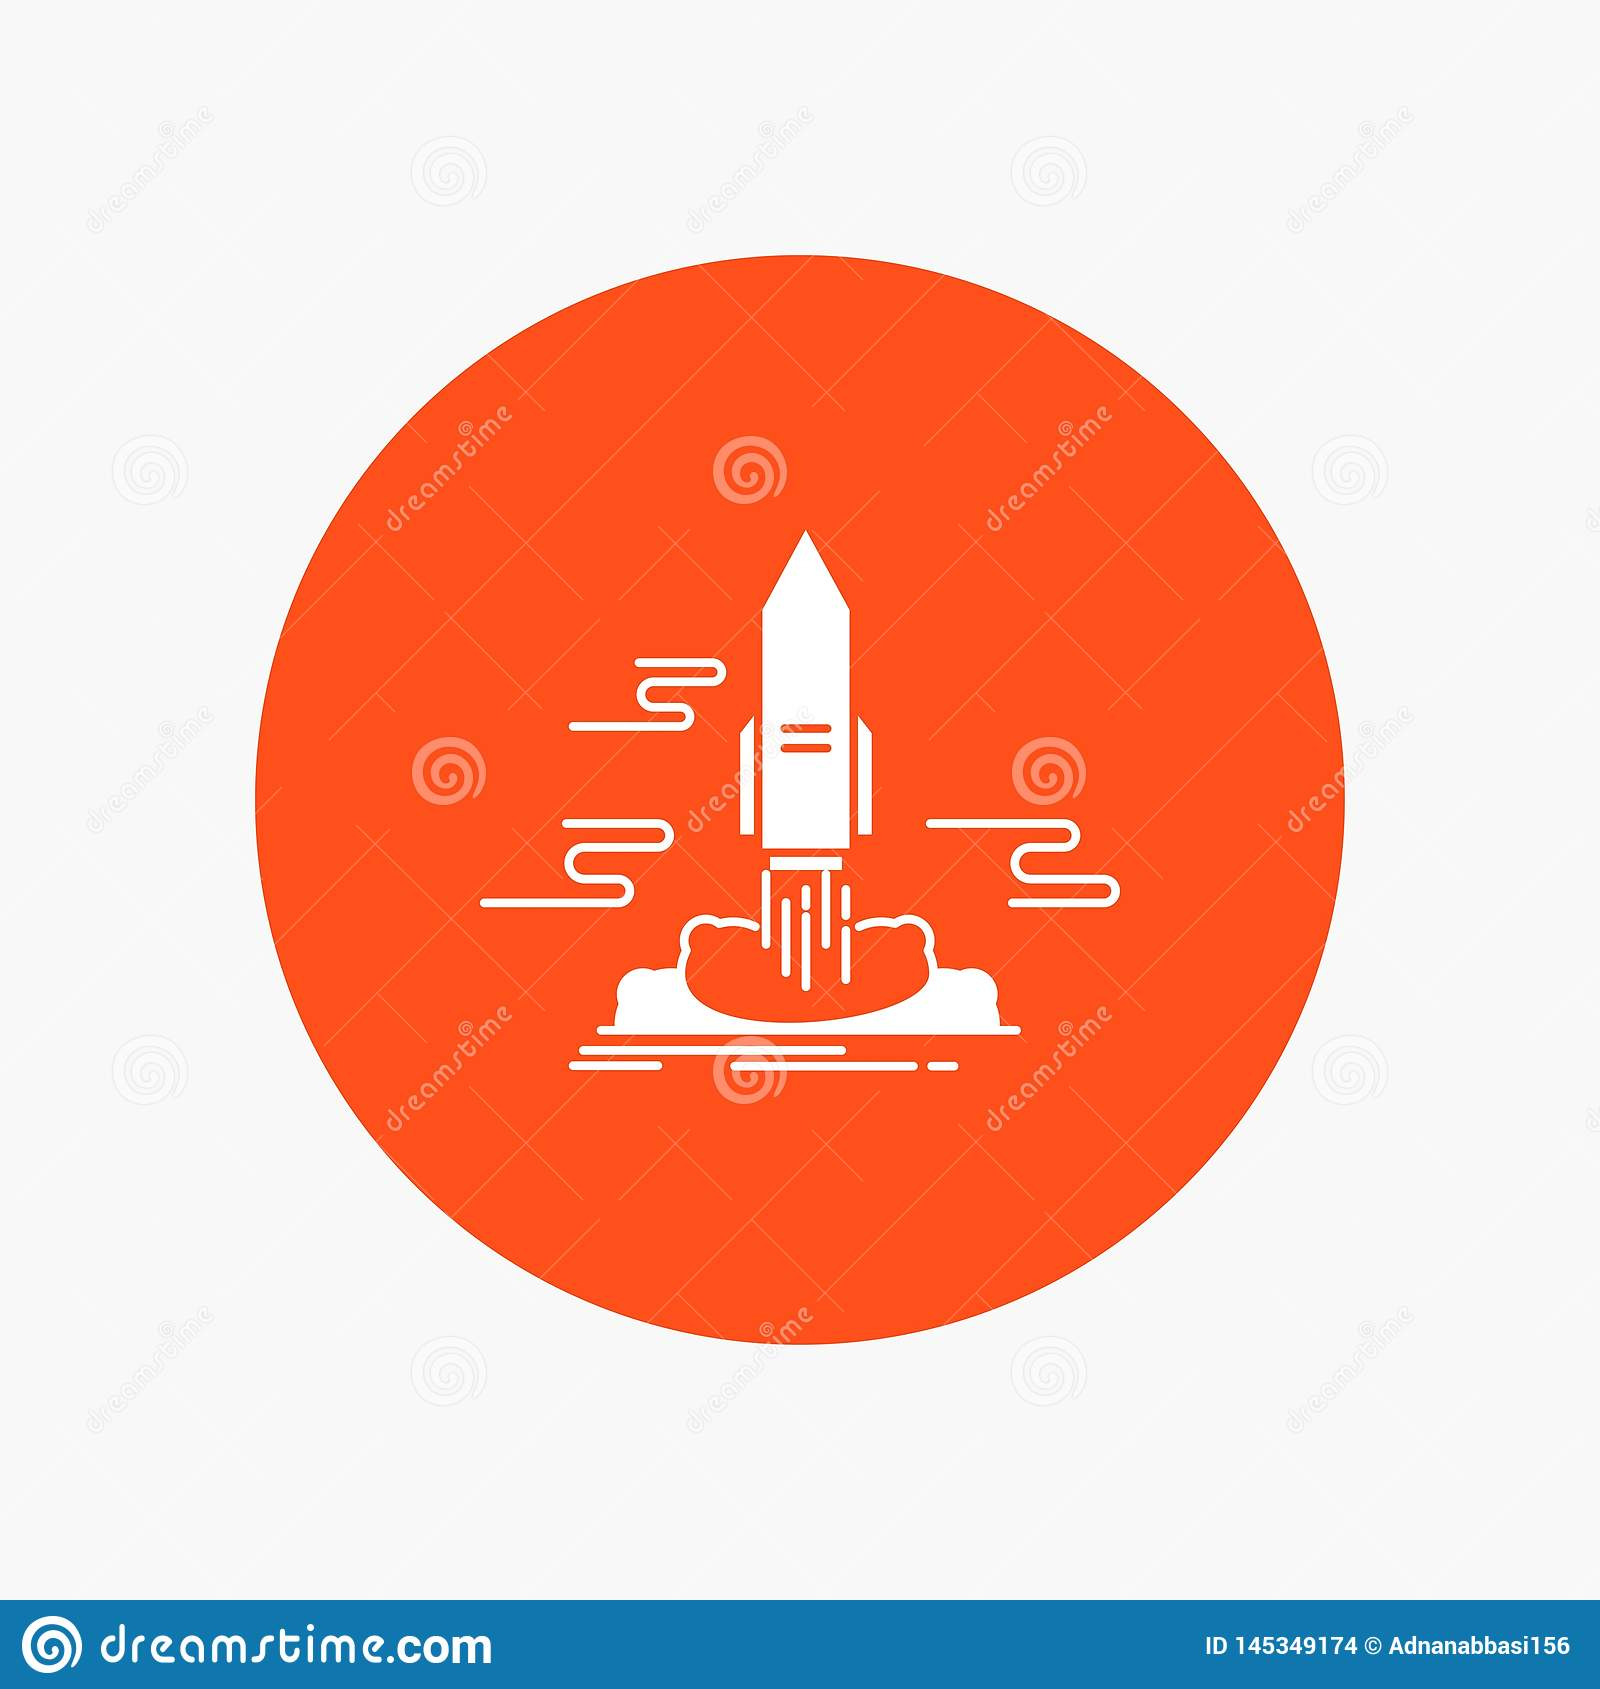 launch, Publish, App, shuttle, space White Glyph Icon in Circle. Vector Button illustration